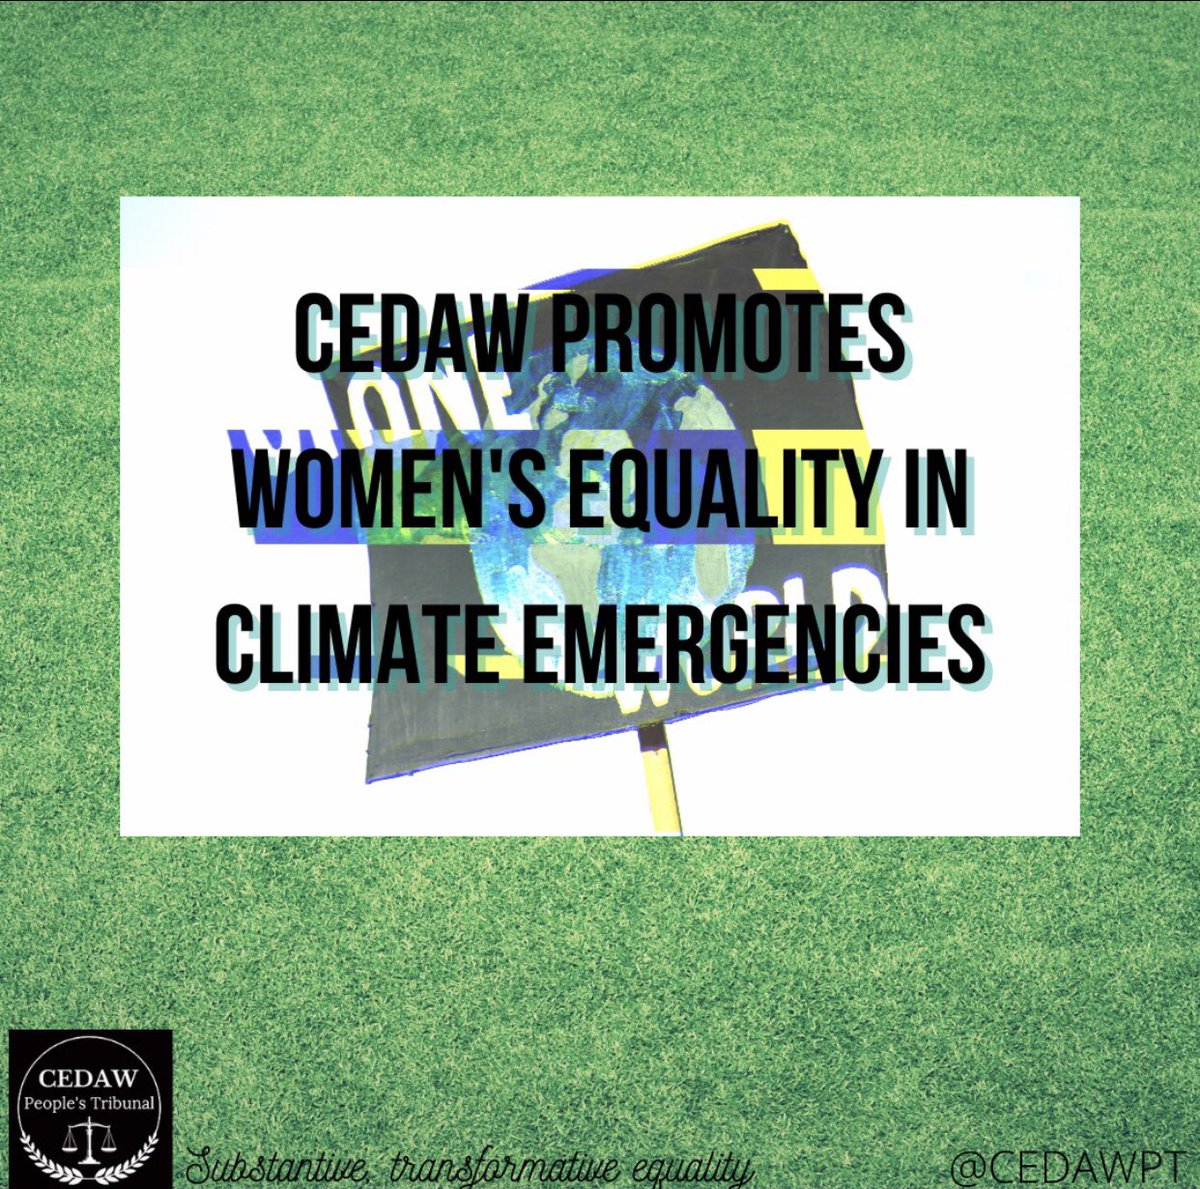 To find out more about #CEDAW implementation from a climate change perspective in the UK, check out our President's report here ➡️ bit.ly/3v5CQfY 🌎 ⚖️ #COP26 #COP26Glasgow #ClimateActionNow #ClimateJustice #ClimateCrisis 2/2